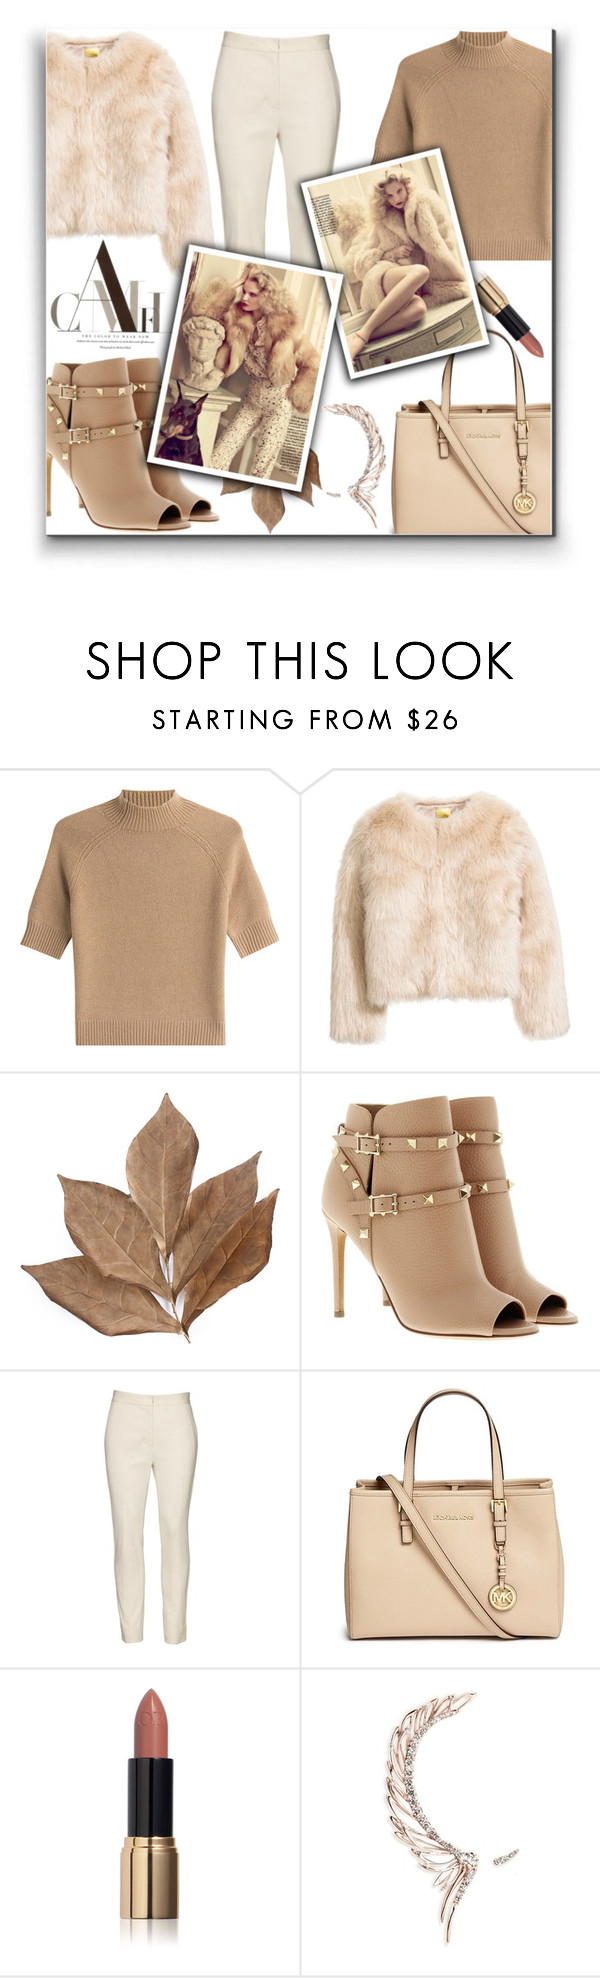 """Neutral"" by kawtar-el ❤ liked on Polyvore featuring Theory, Bliss Studio, Valentino, Reed Krakoff, Michael Kors, Ciaté, Cristina Ortiz and neutrals"